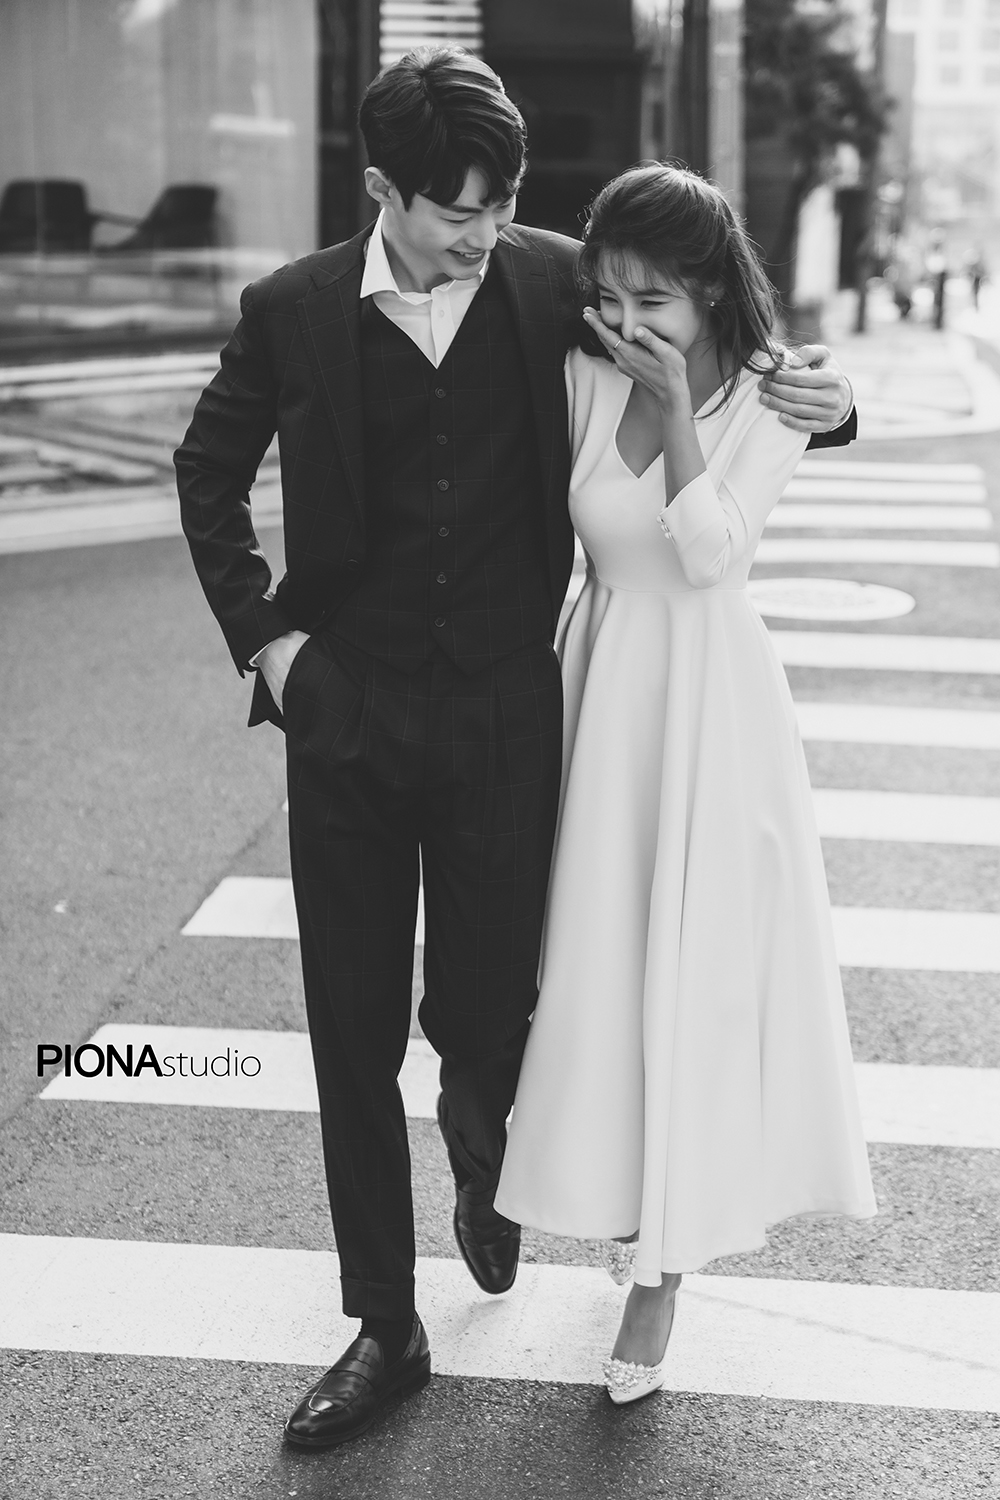 korean wedding photoshoot black and white shot at a crossing